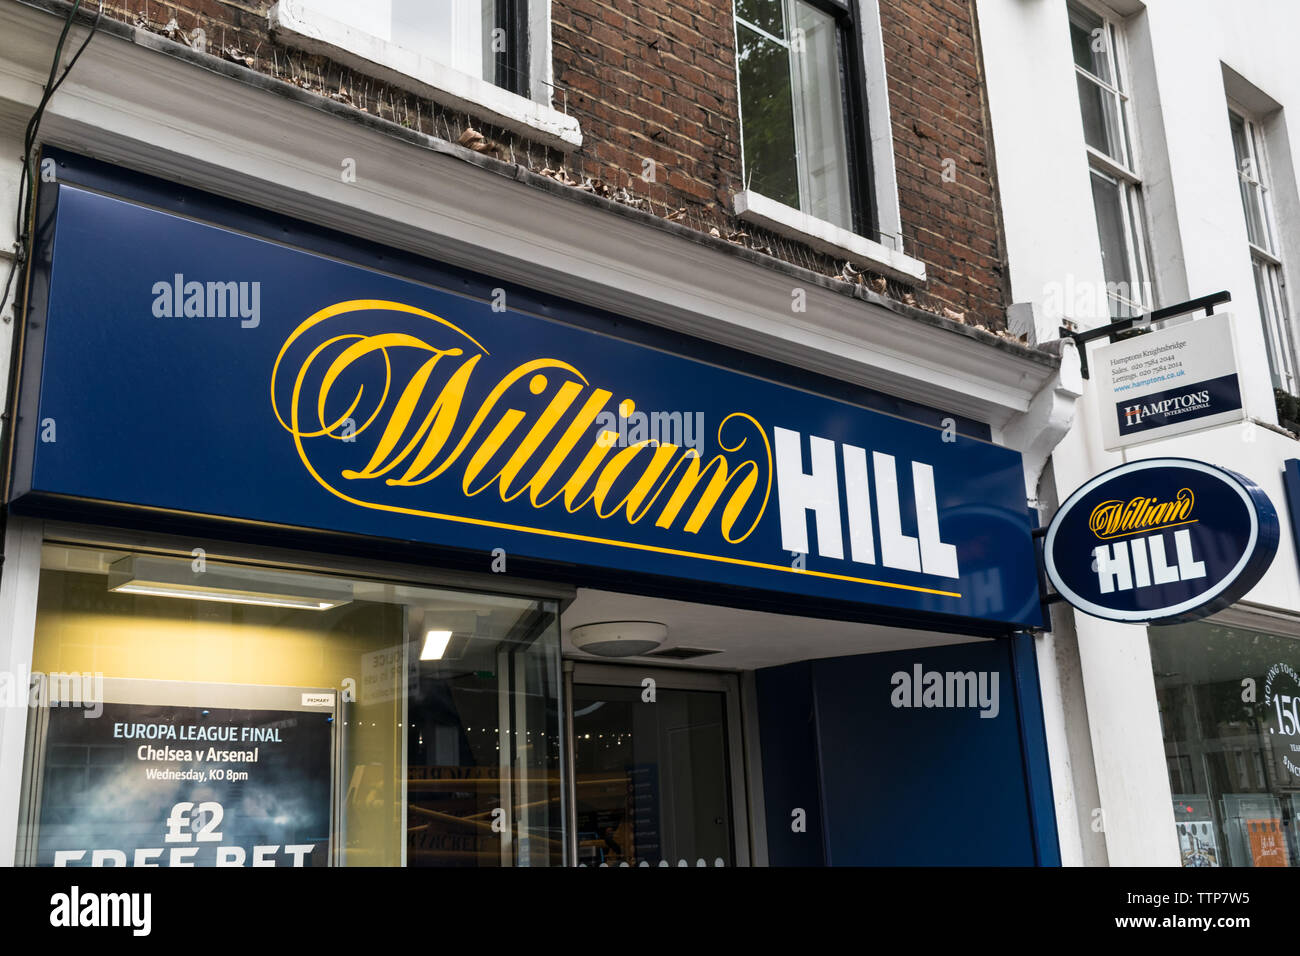 London, UK - May 28, 2019: William Hill Bookies on Londons high street - Stock Image